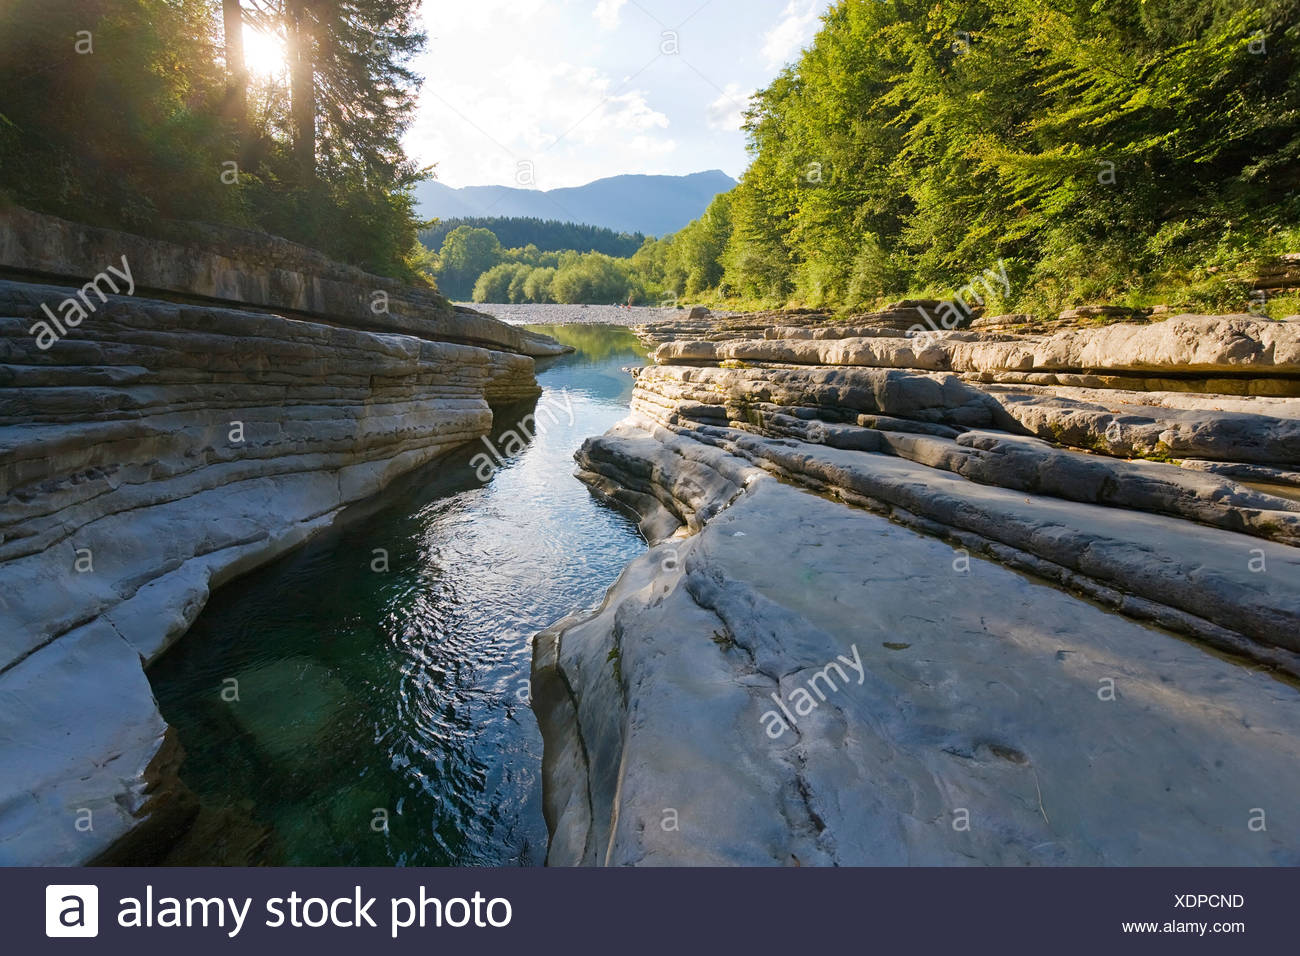 River flowing through forest, Taugl, Tennengau, Salzburg, Austria Stock Photo